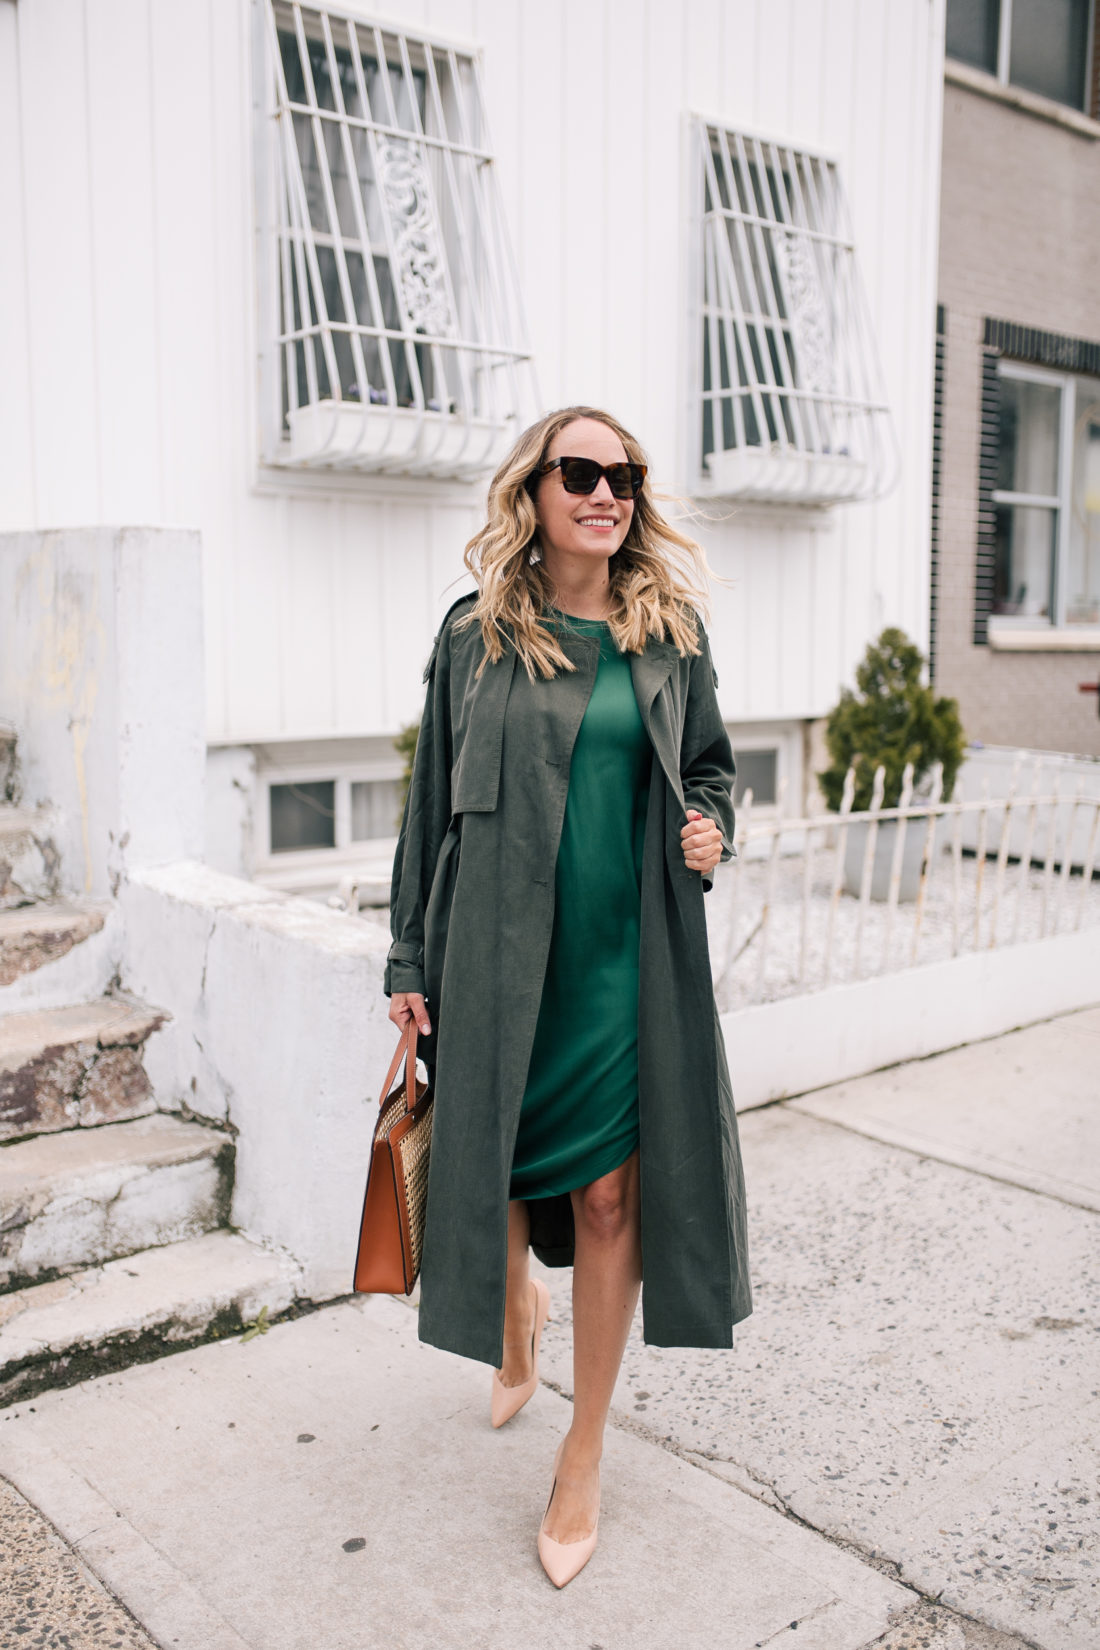 Green on Green Outfit